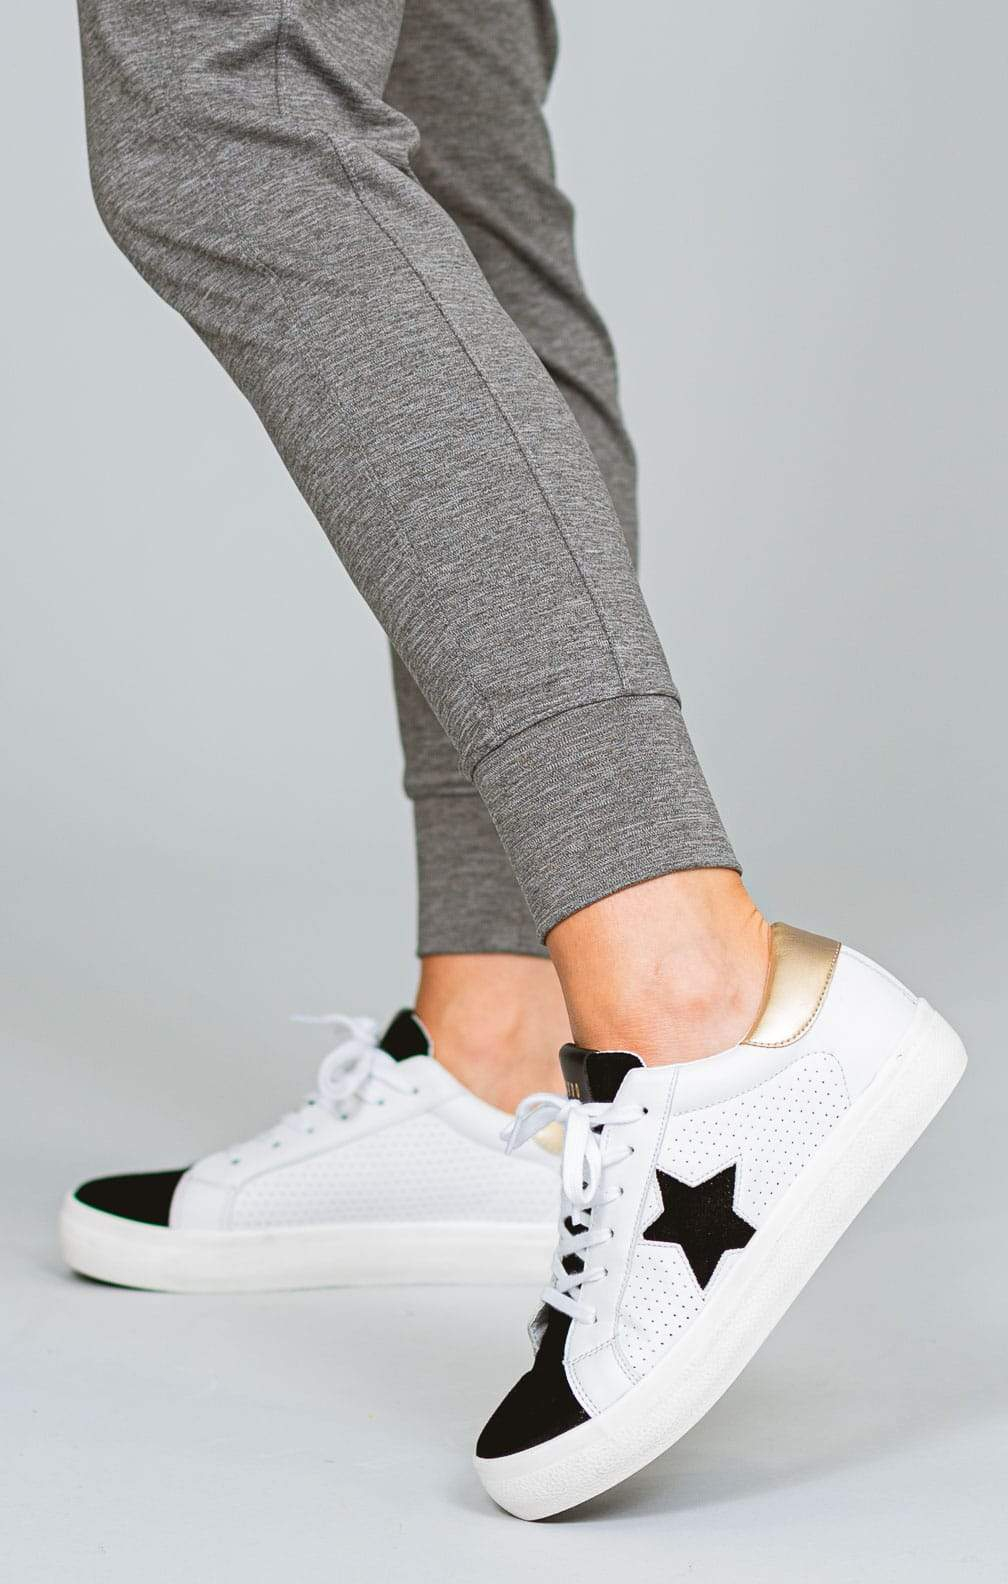 Image of Starling Steve Madden Sneakers